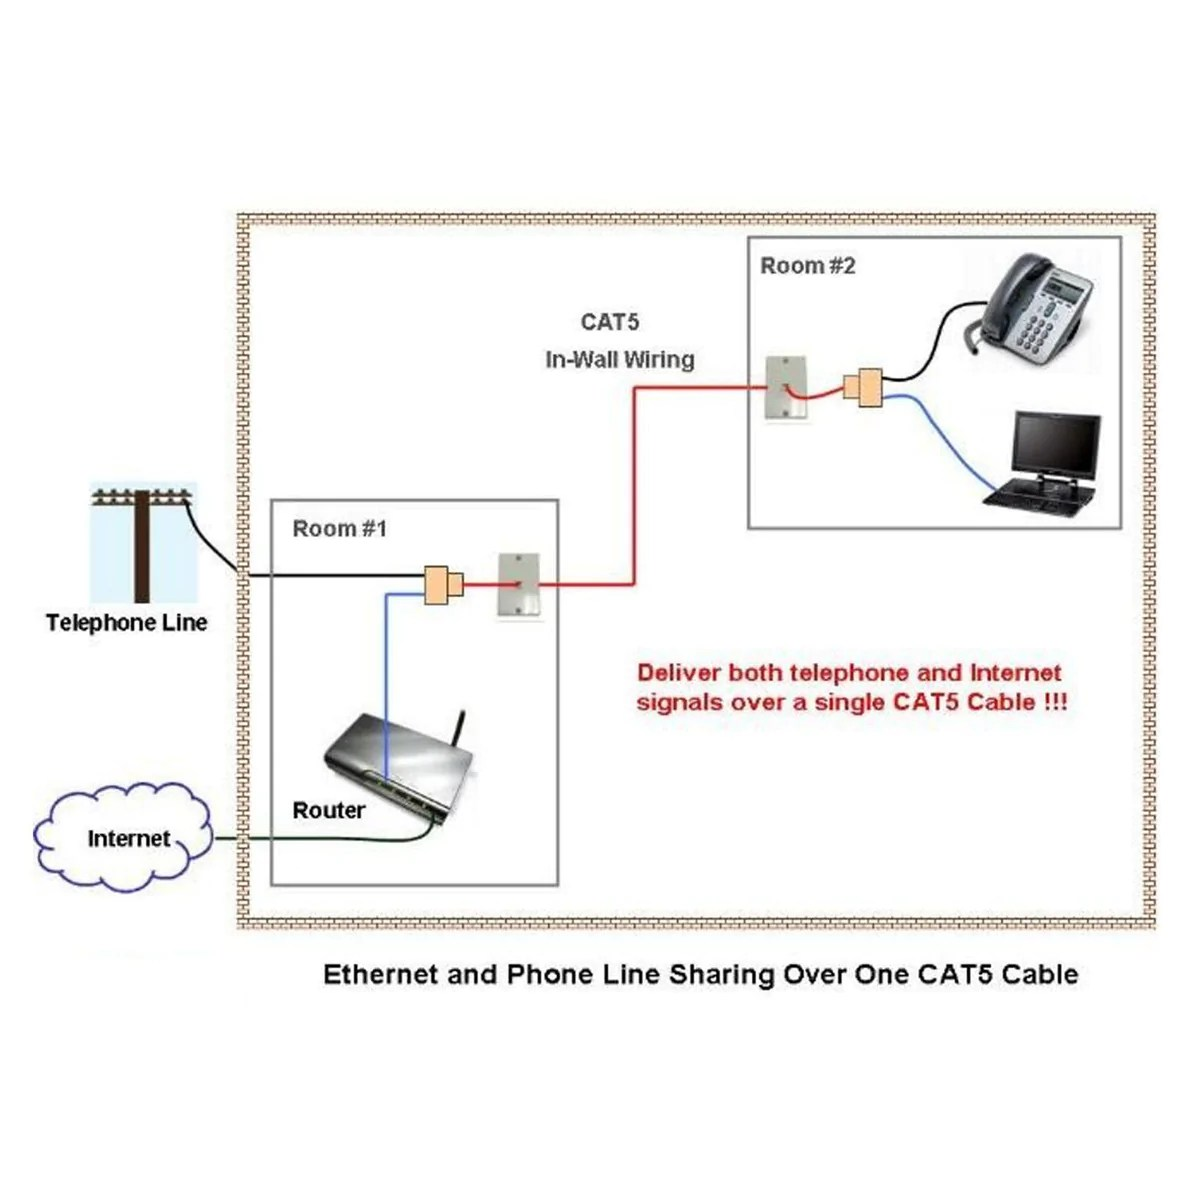 rj45 rj11 splitter cable sharing kit for ethernet and phone lines dualcomm [ 1200 x 1200 Pixel ]